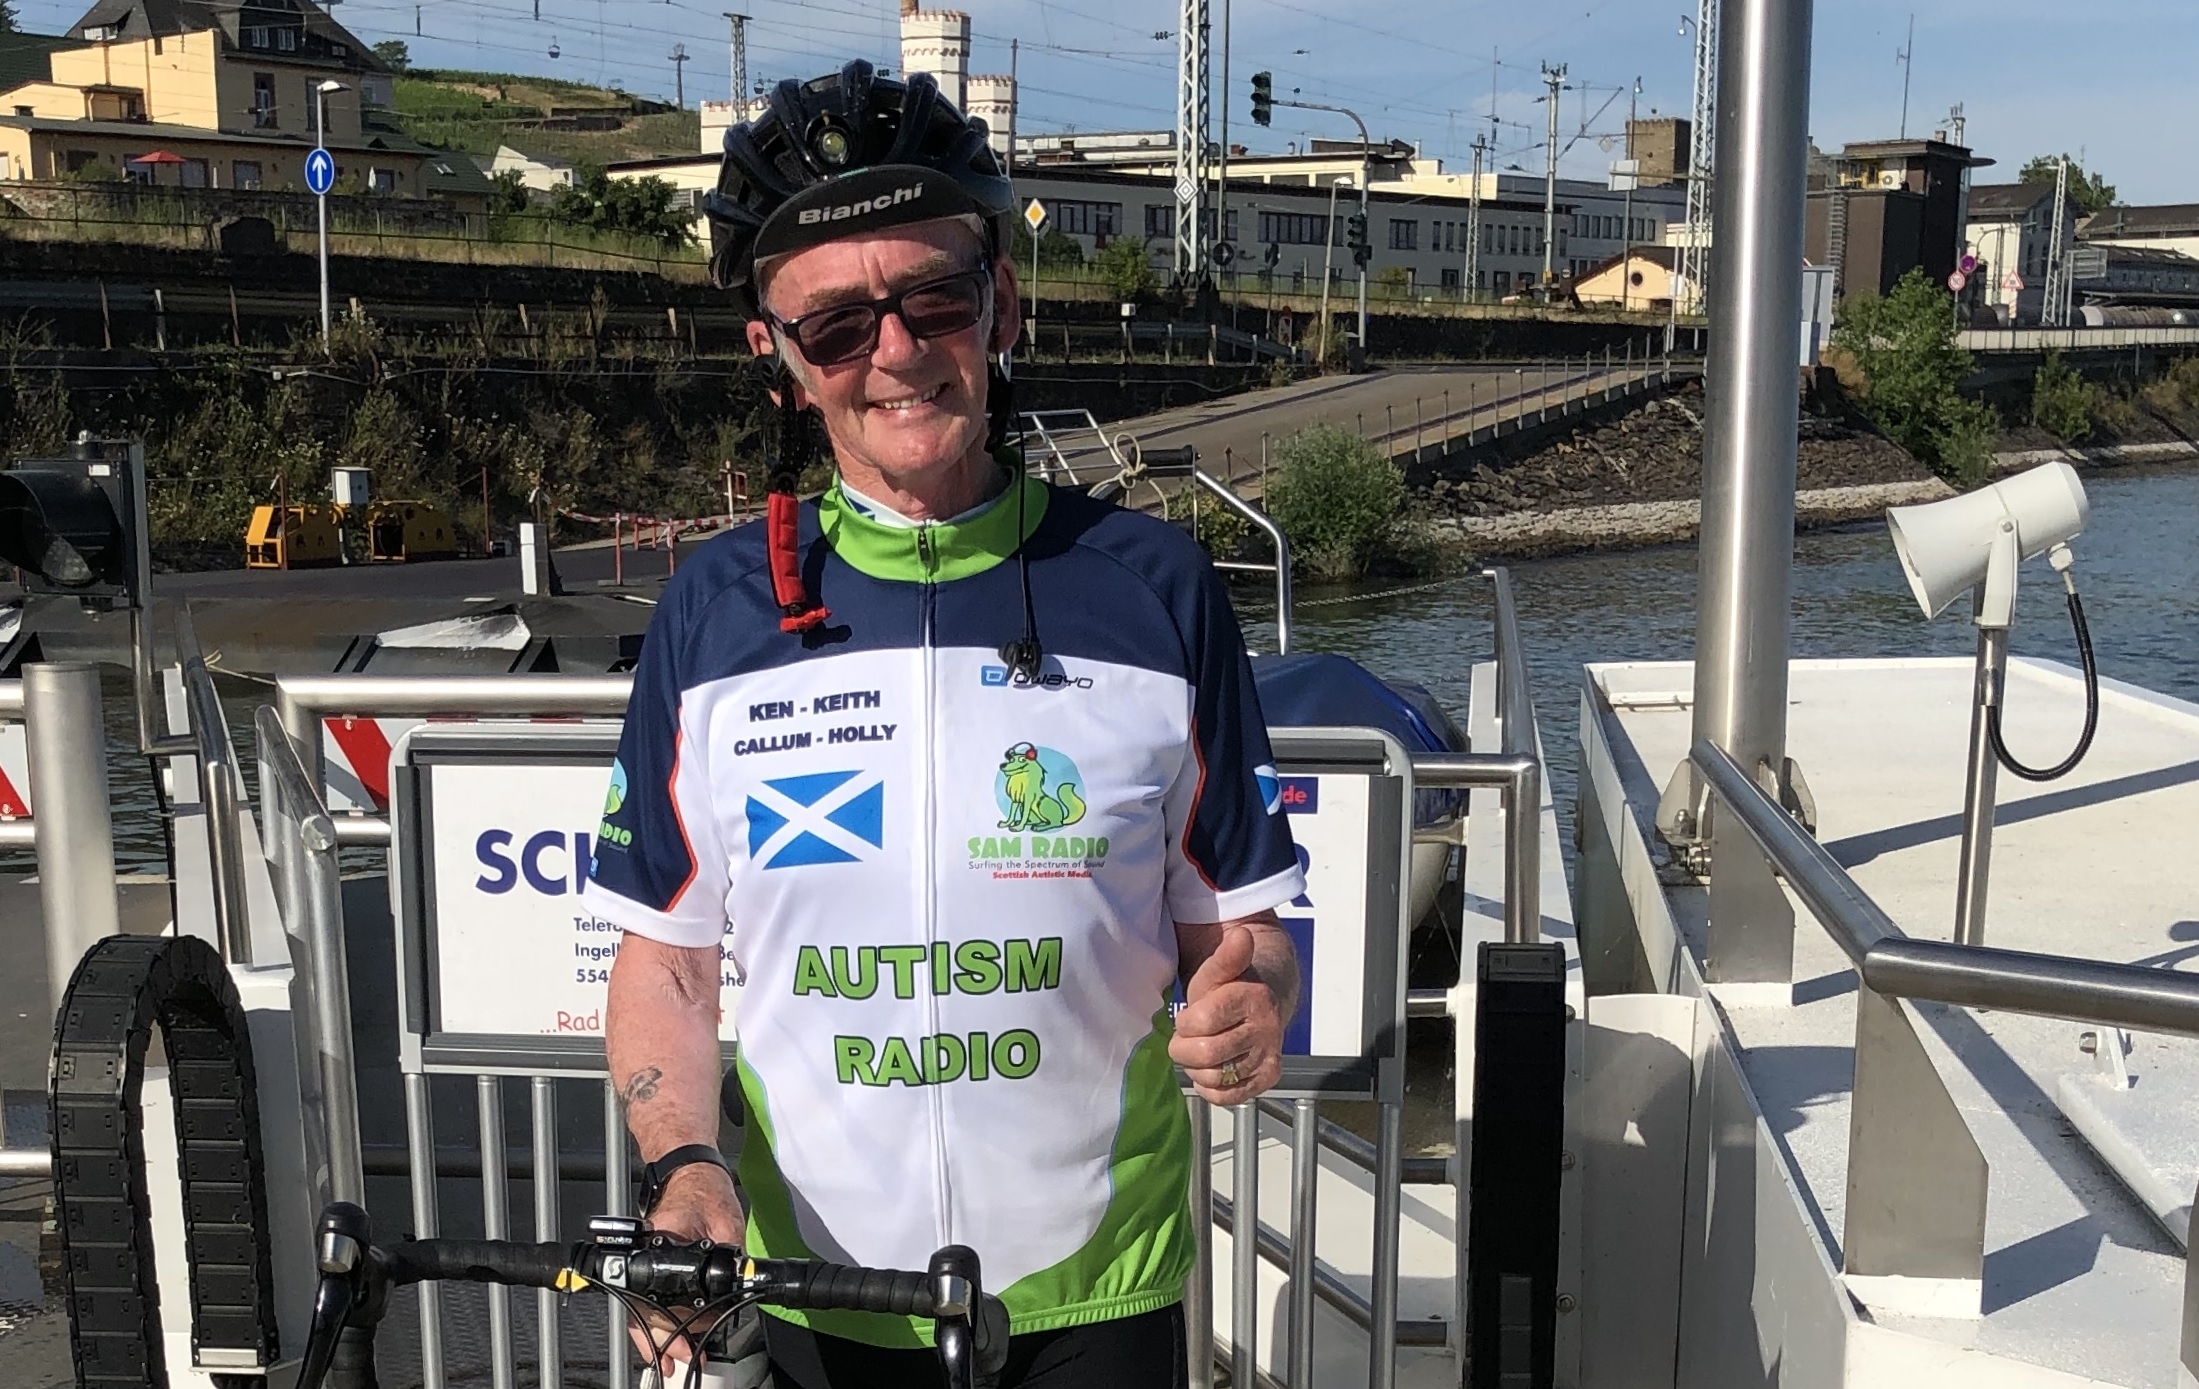 FUNDRAISING FOR SAM RADIO – 3 Generations Cycling Marathon